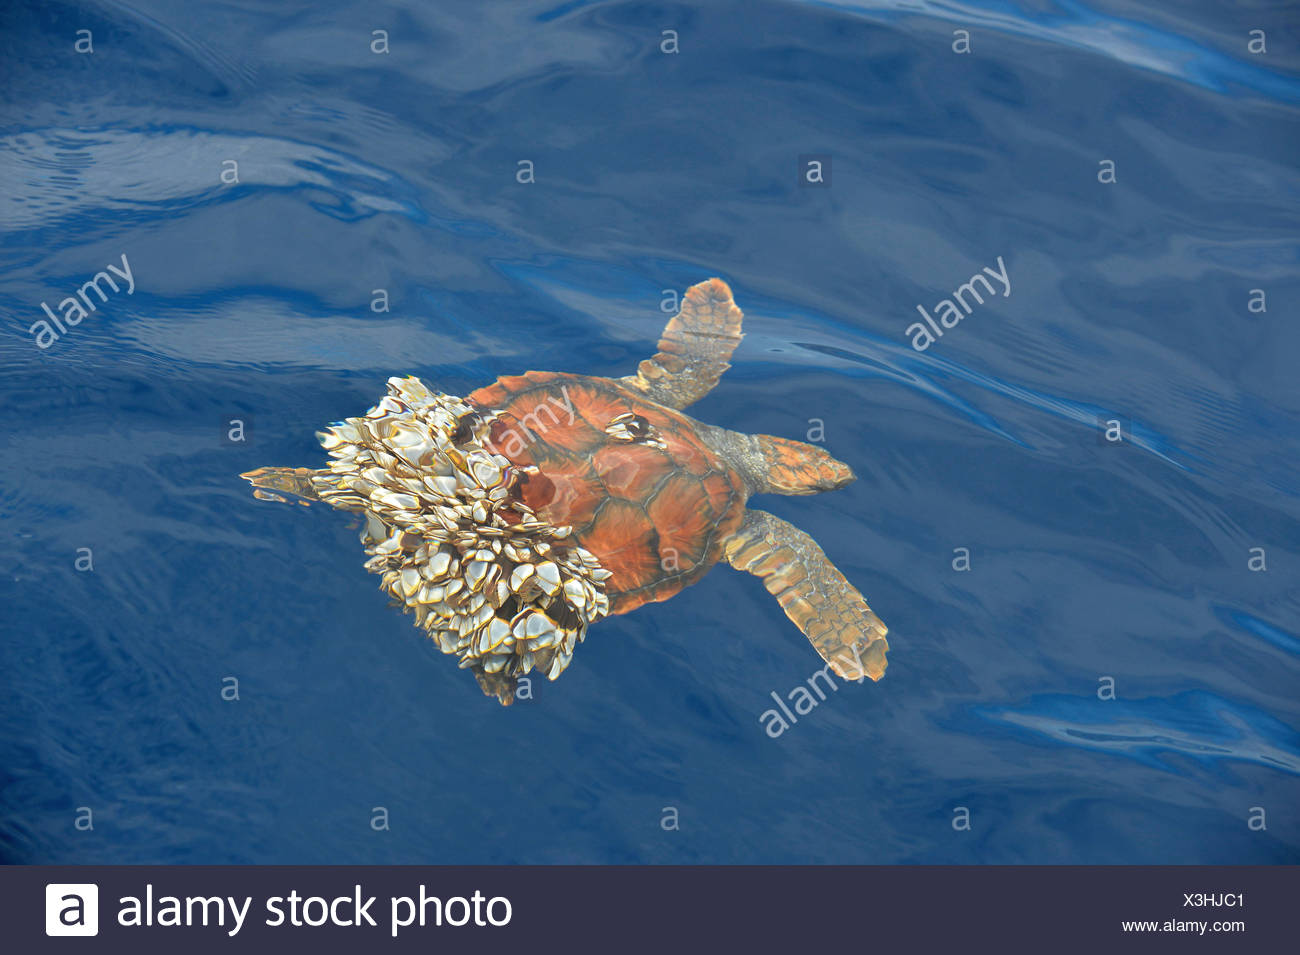 Turtle Barnacle Stock Photos Amp Turtle Barnacle Stock